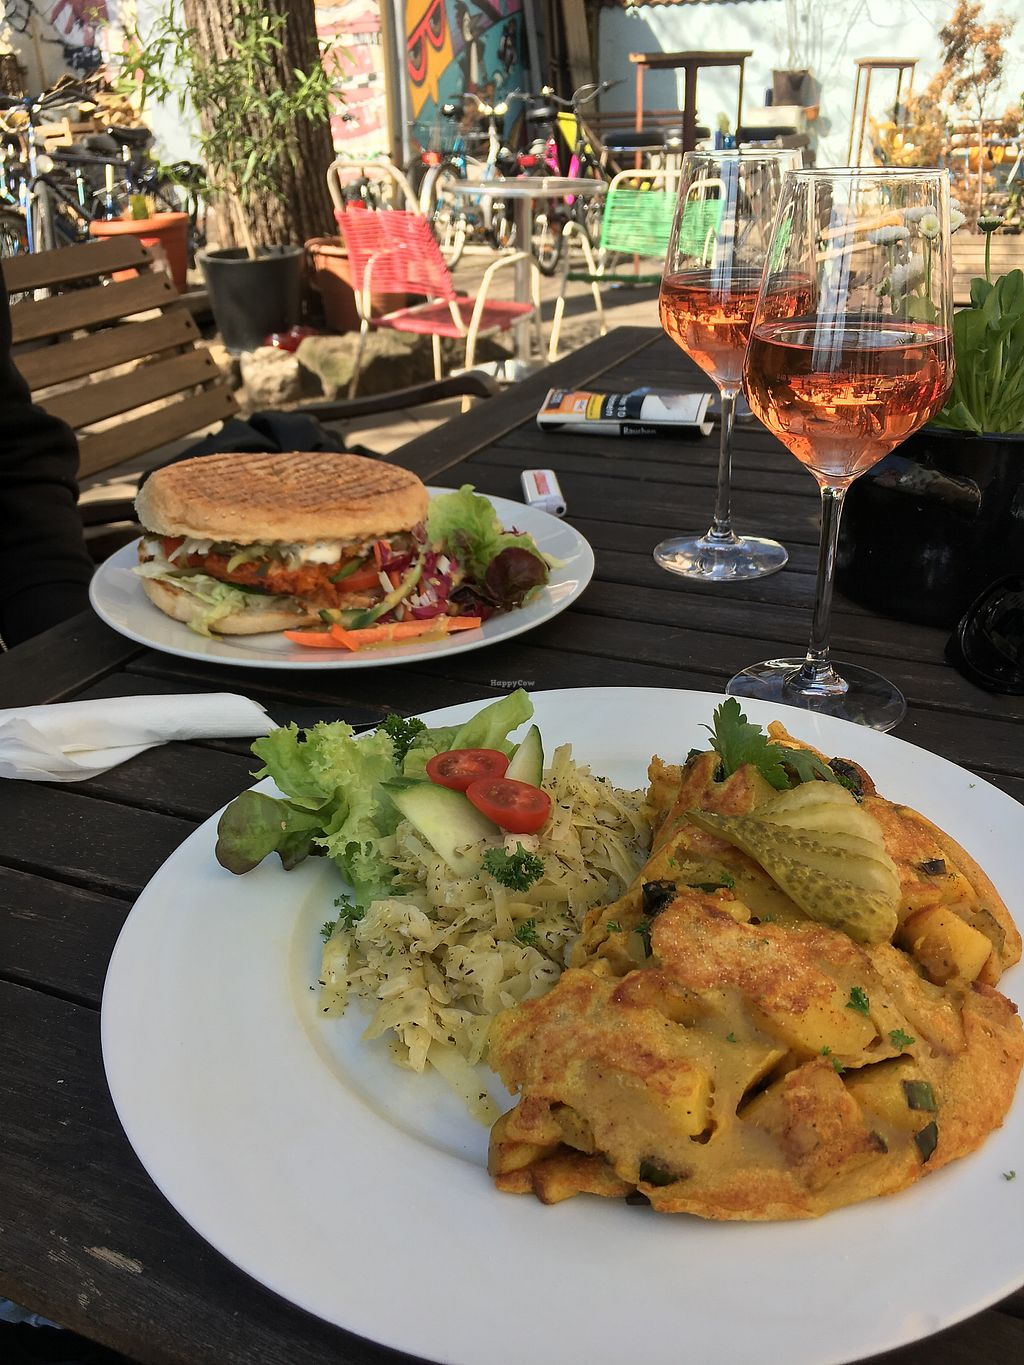 "Photo of Falscher Hase  by <a href=""/members/profile/MonikaSnyder"">MonikaSnyder</a> <br/>Soja-Burger, Bauernfrühstück und Rosé <br/> April 7, 2018  - <a href='/contact/abuse/image/28876/382080'>Report</a>"